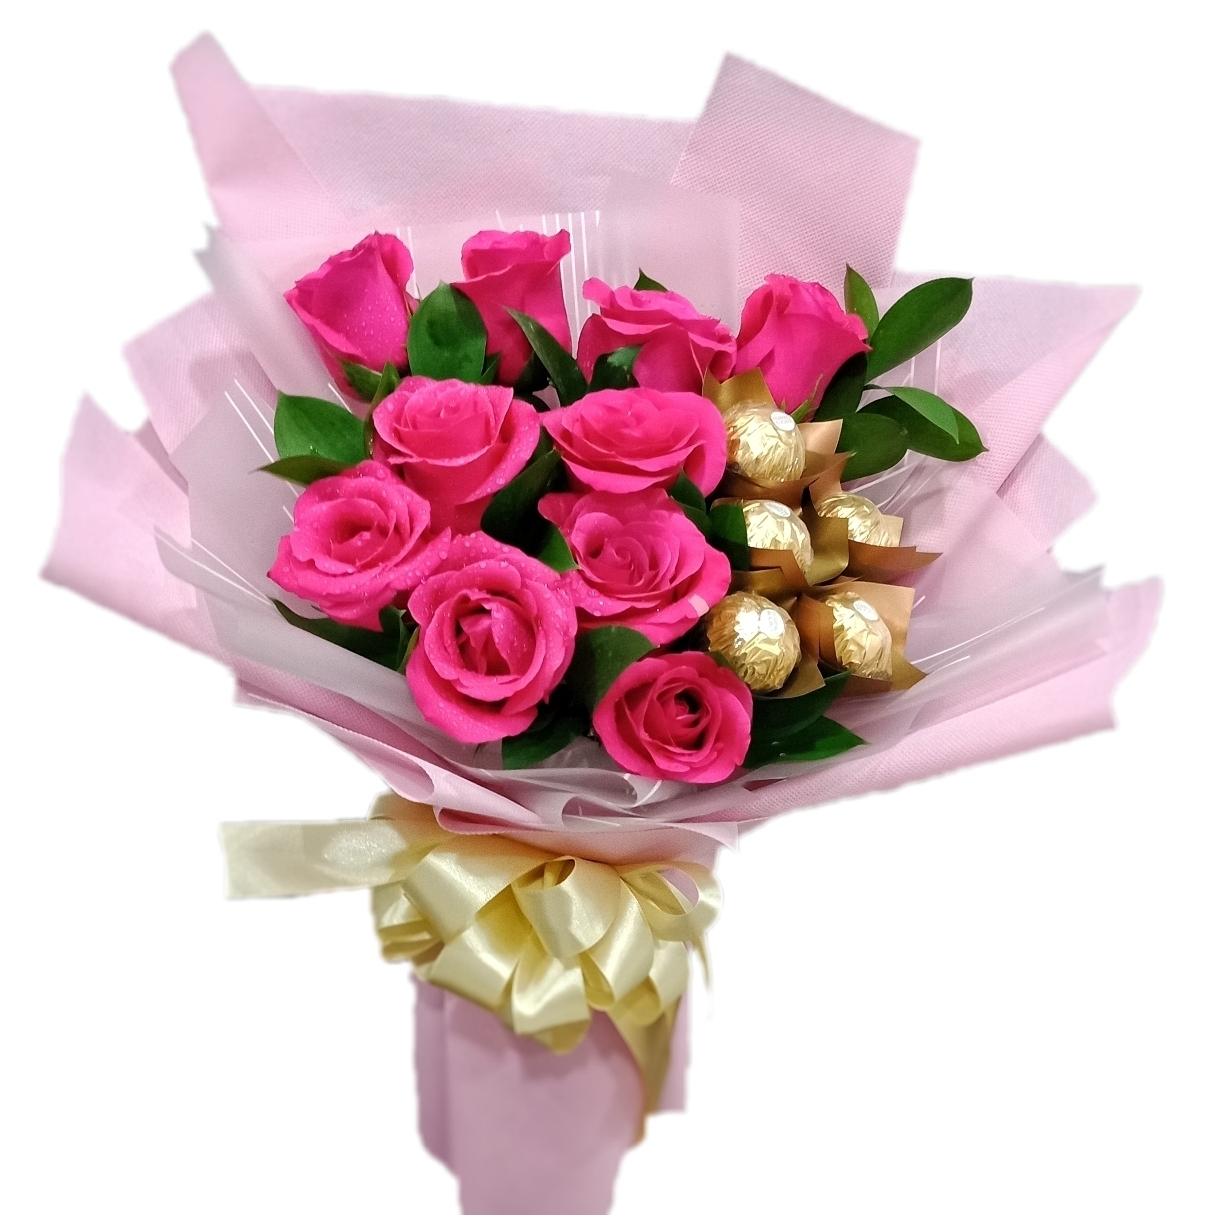 Bbc003 10 pink roses flowers bouquet delivery in klang shah alam bbc003 10 pink roses flowers bouquet delivery in klang shah alam kl izmirmasajfo Images